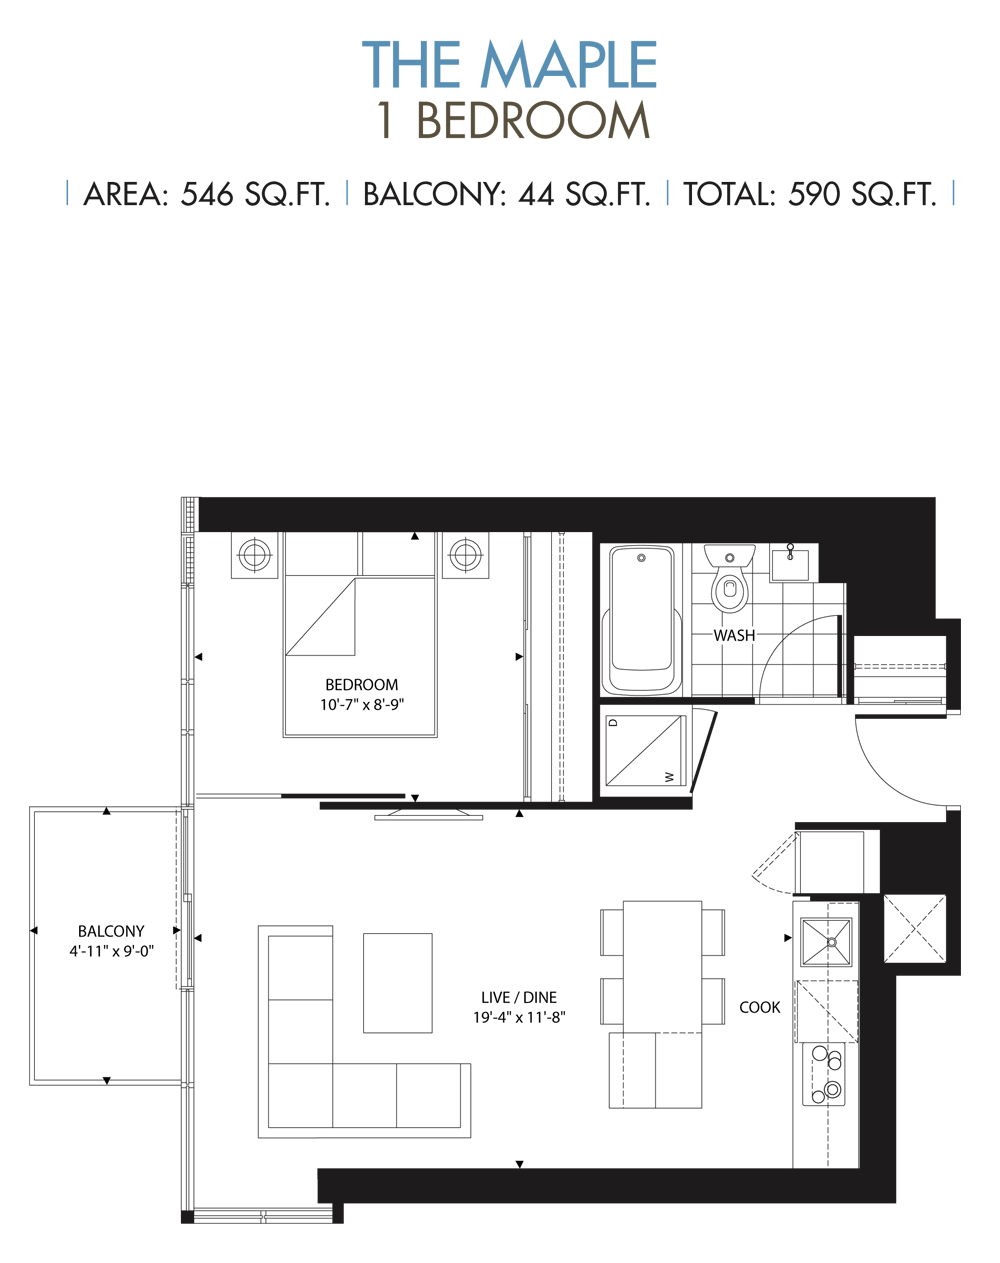 NICHOLAS CONDOS - FLOORPLANS ONE BED 590 SQ FEET - CONTACT YOSSI KAPLAN